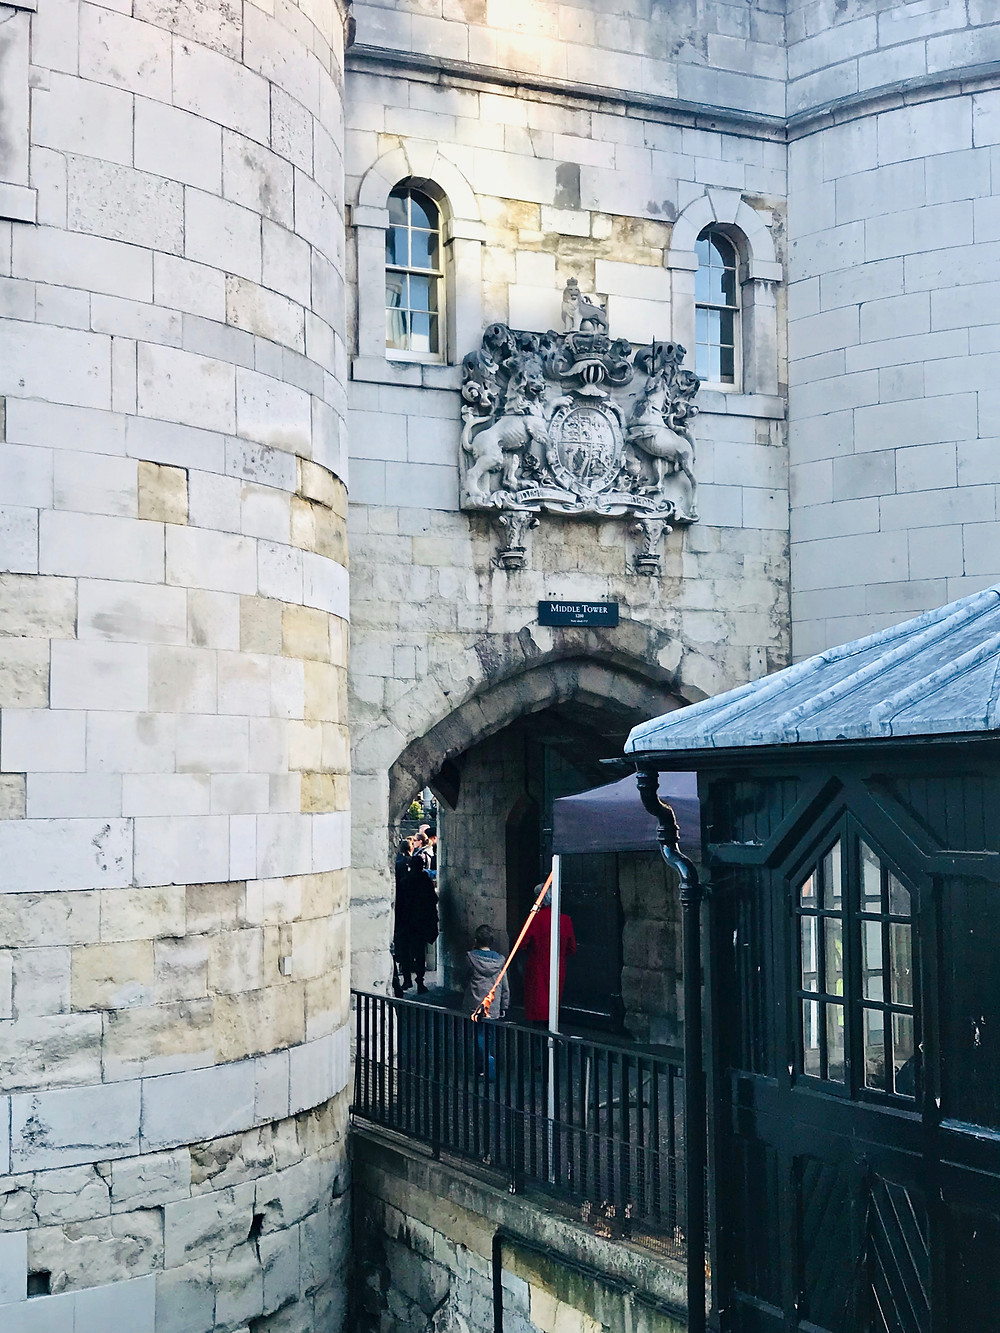 Middle Tower with the royal coat of arms above the arched entrance door